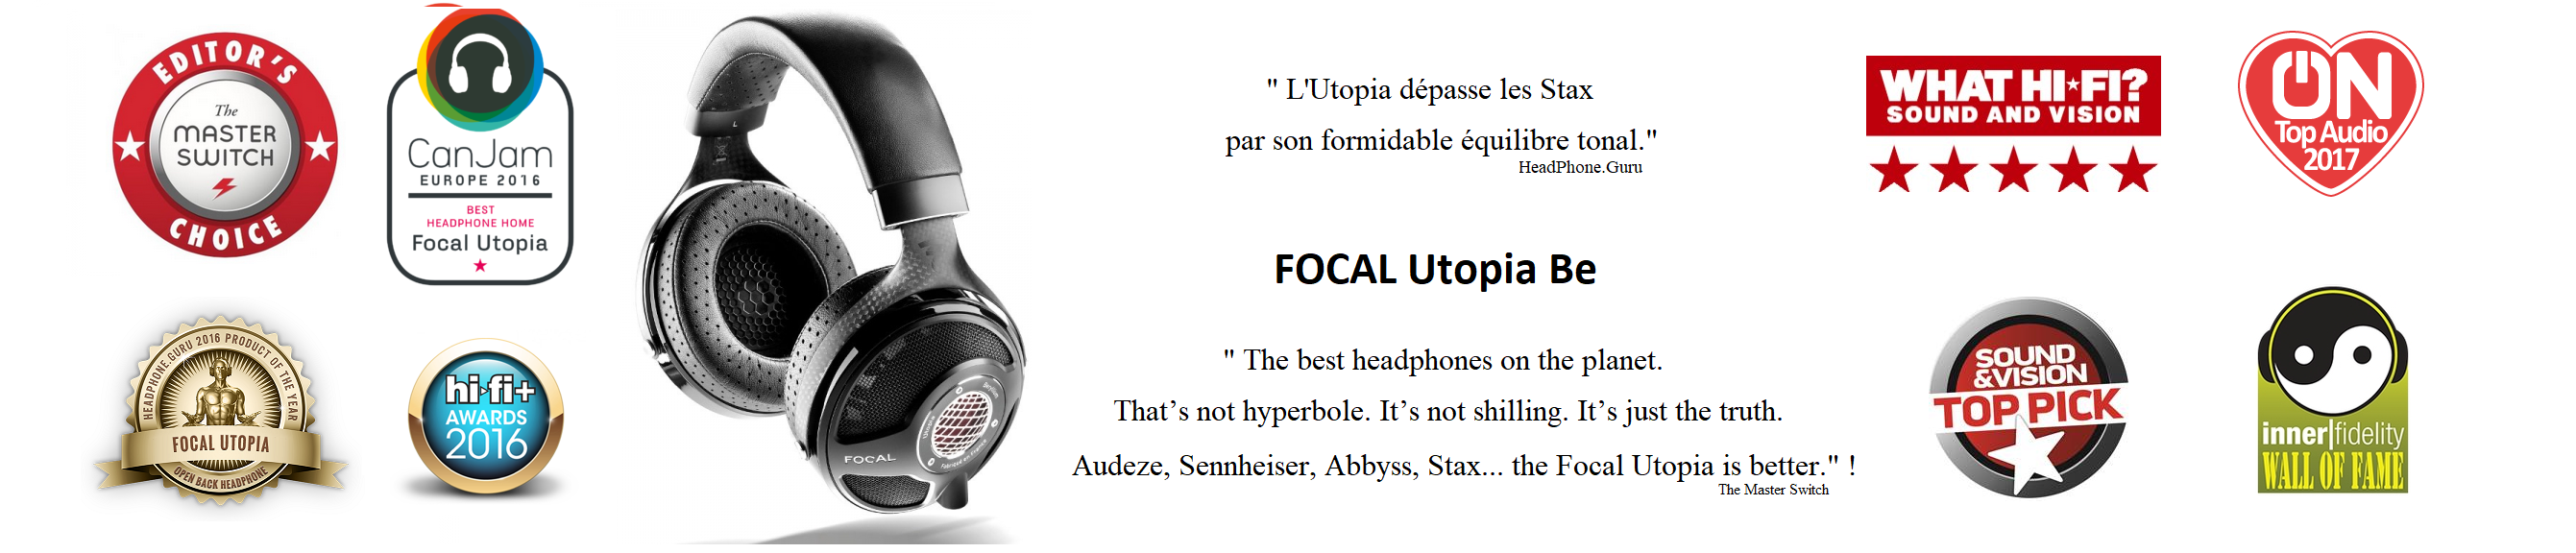 Focal Utopia Award